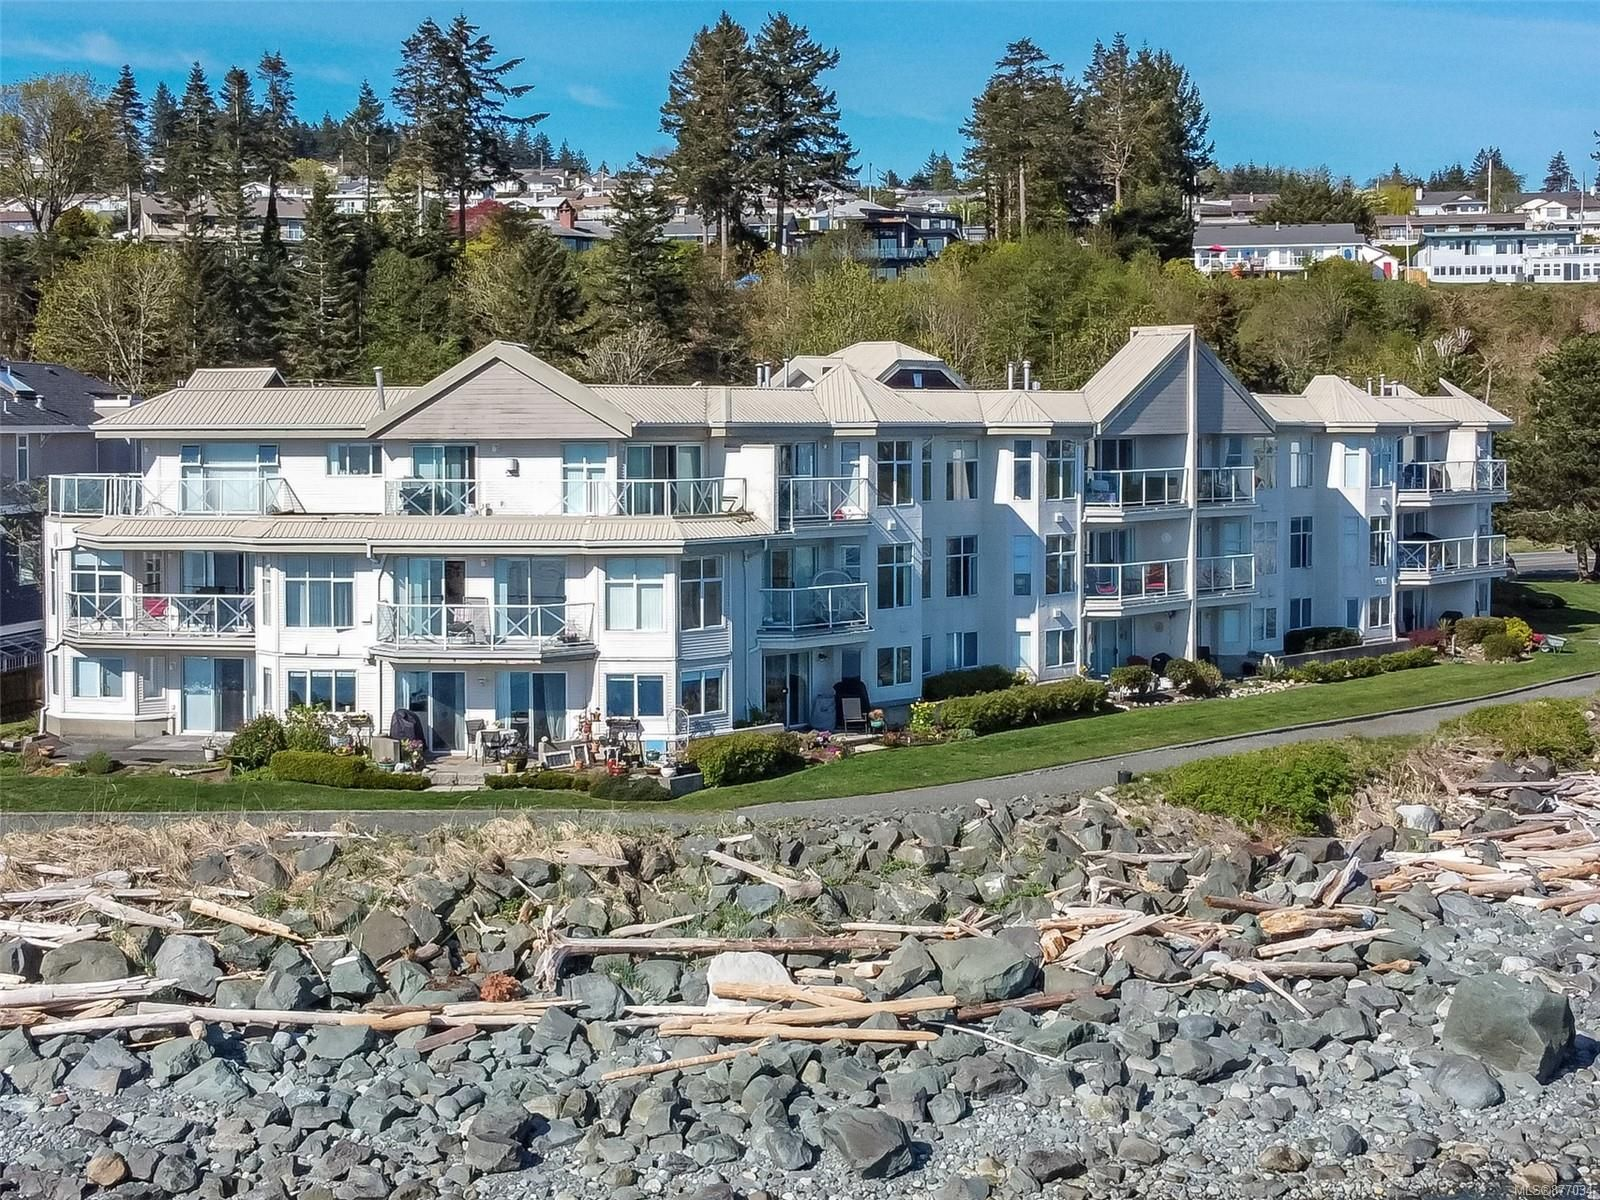 Main Photo: 106 87 S Island Hwy in : CR Campbell River Central Condo for sale (Campbell River)  : MLS®# 877034